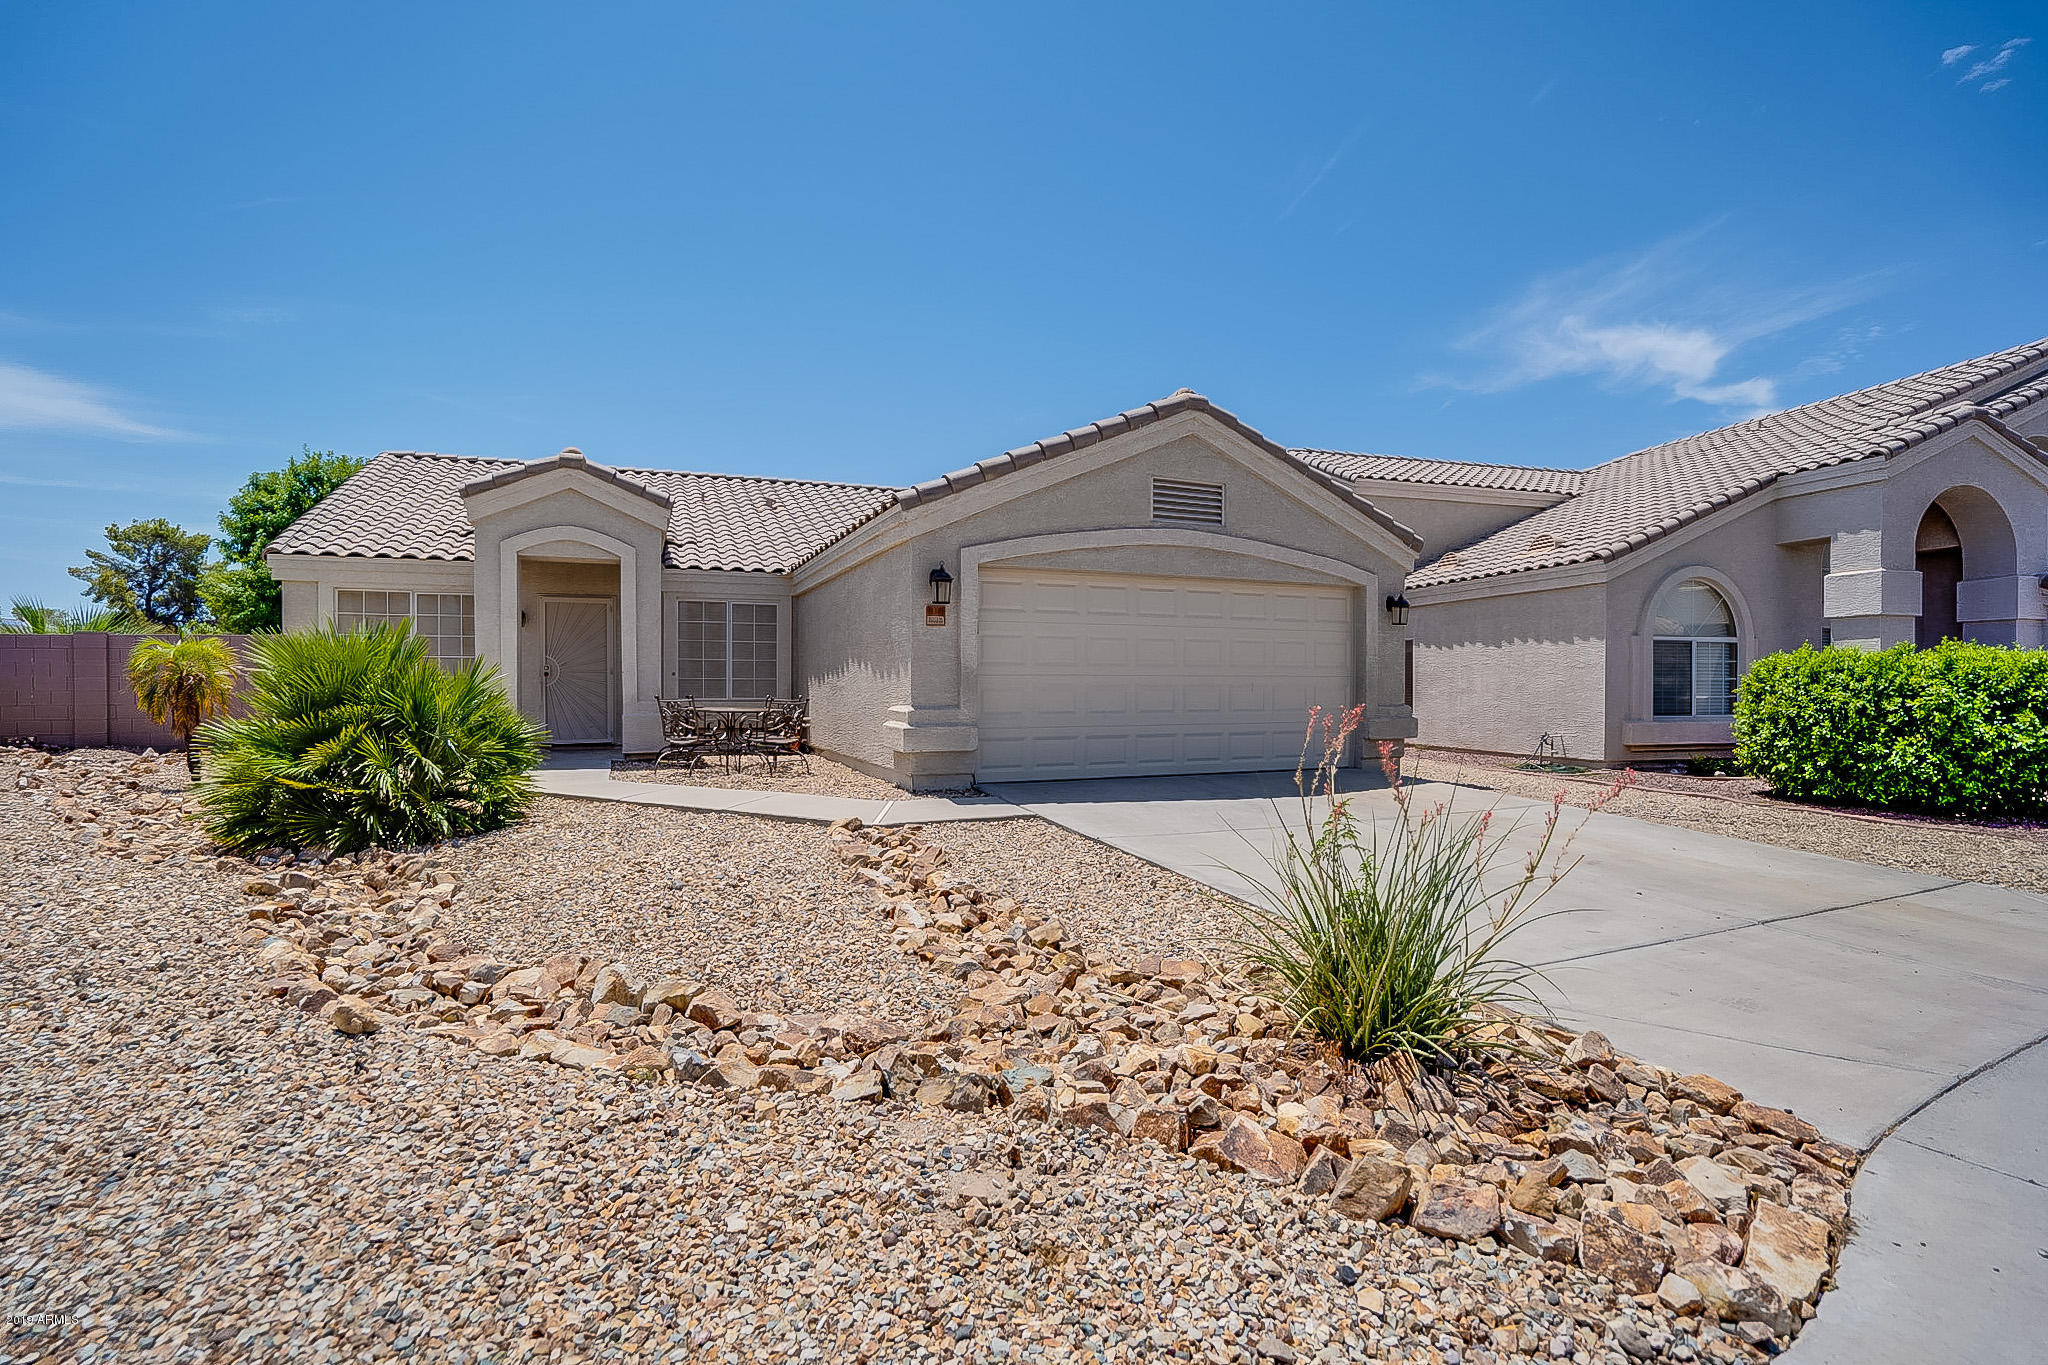 11105 W ASHLEY CHANTIL Drive, Surprise, Arizona